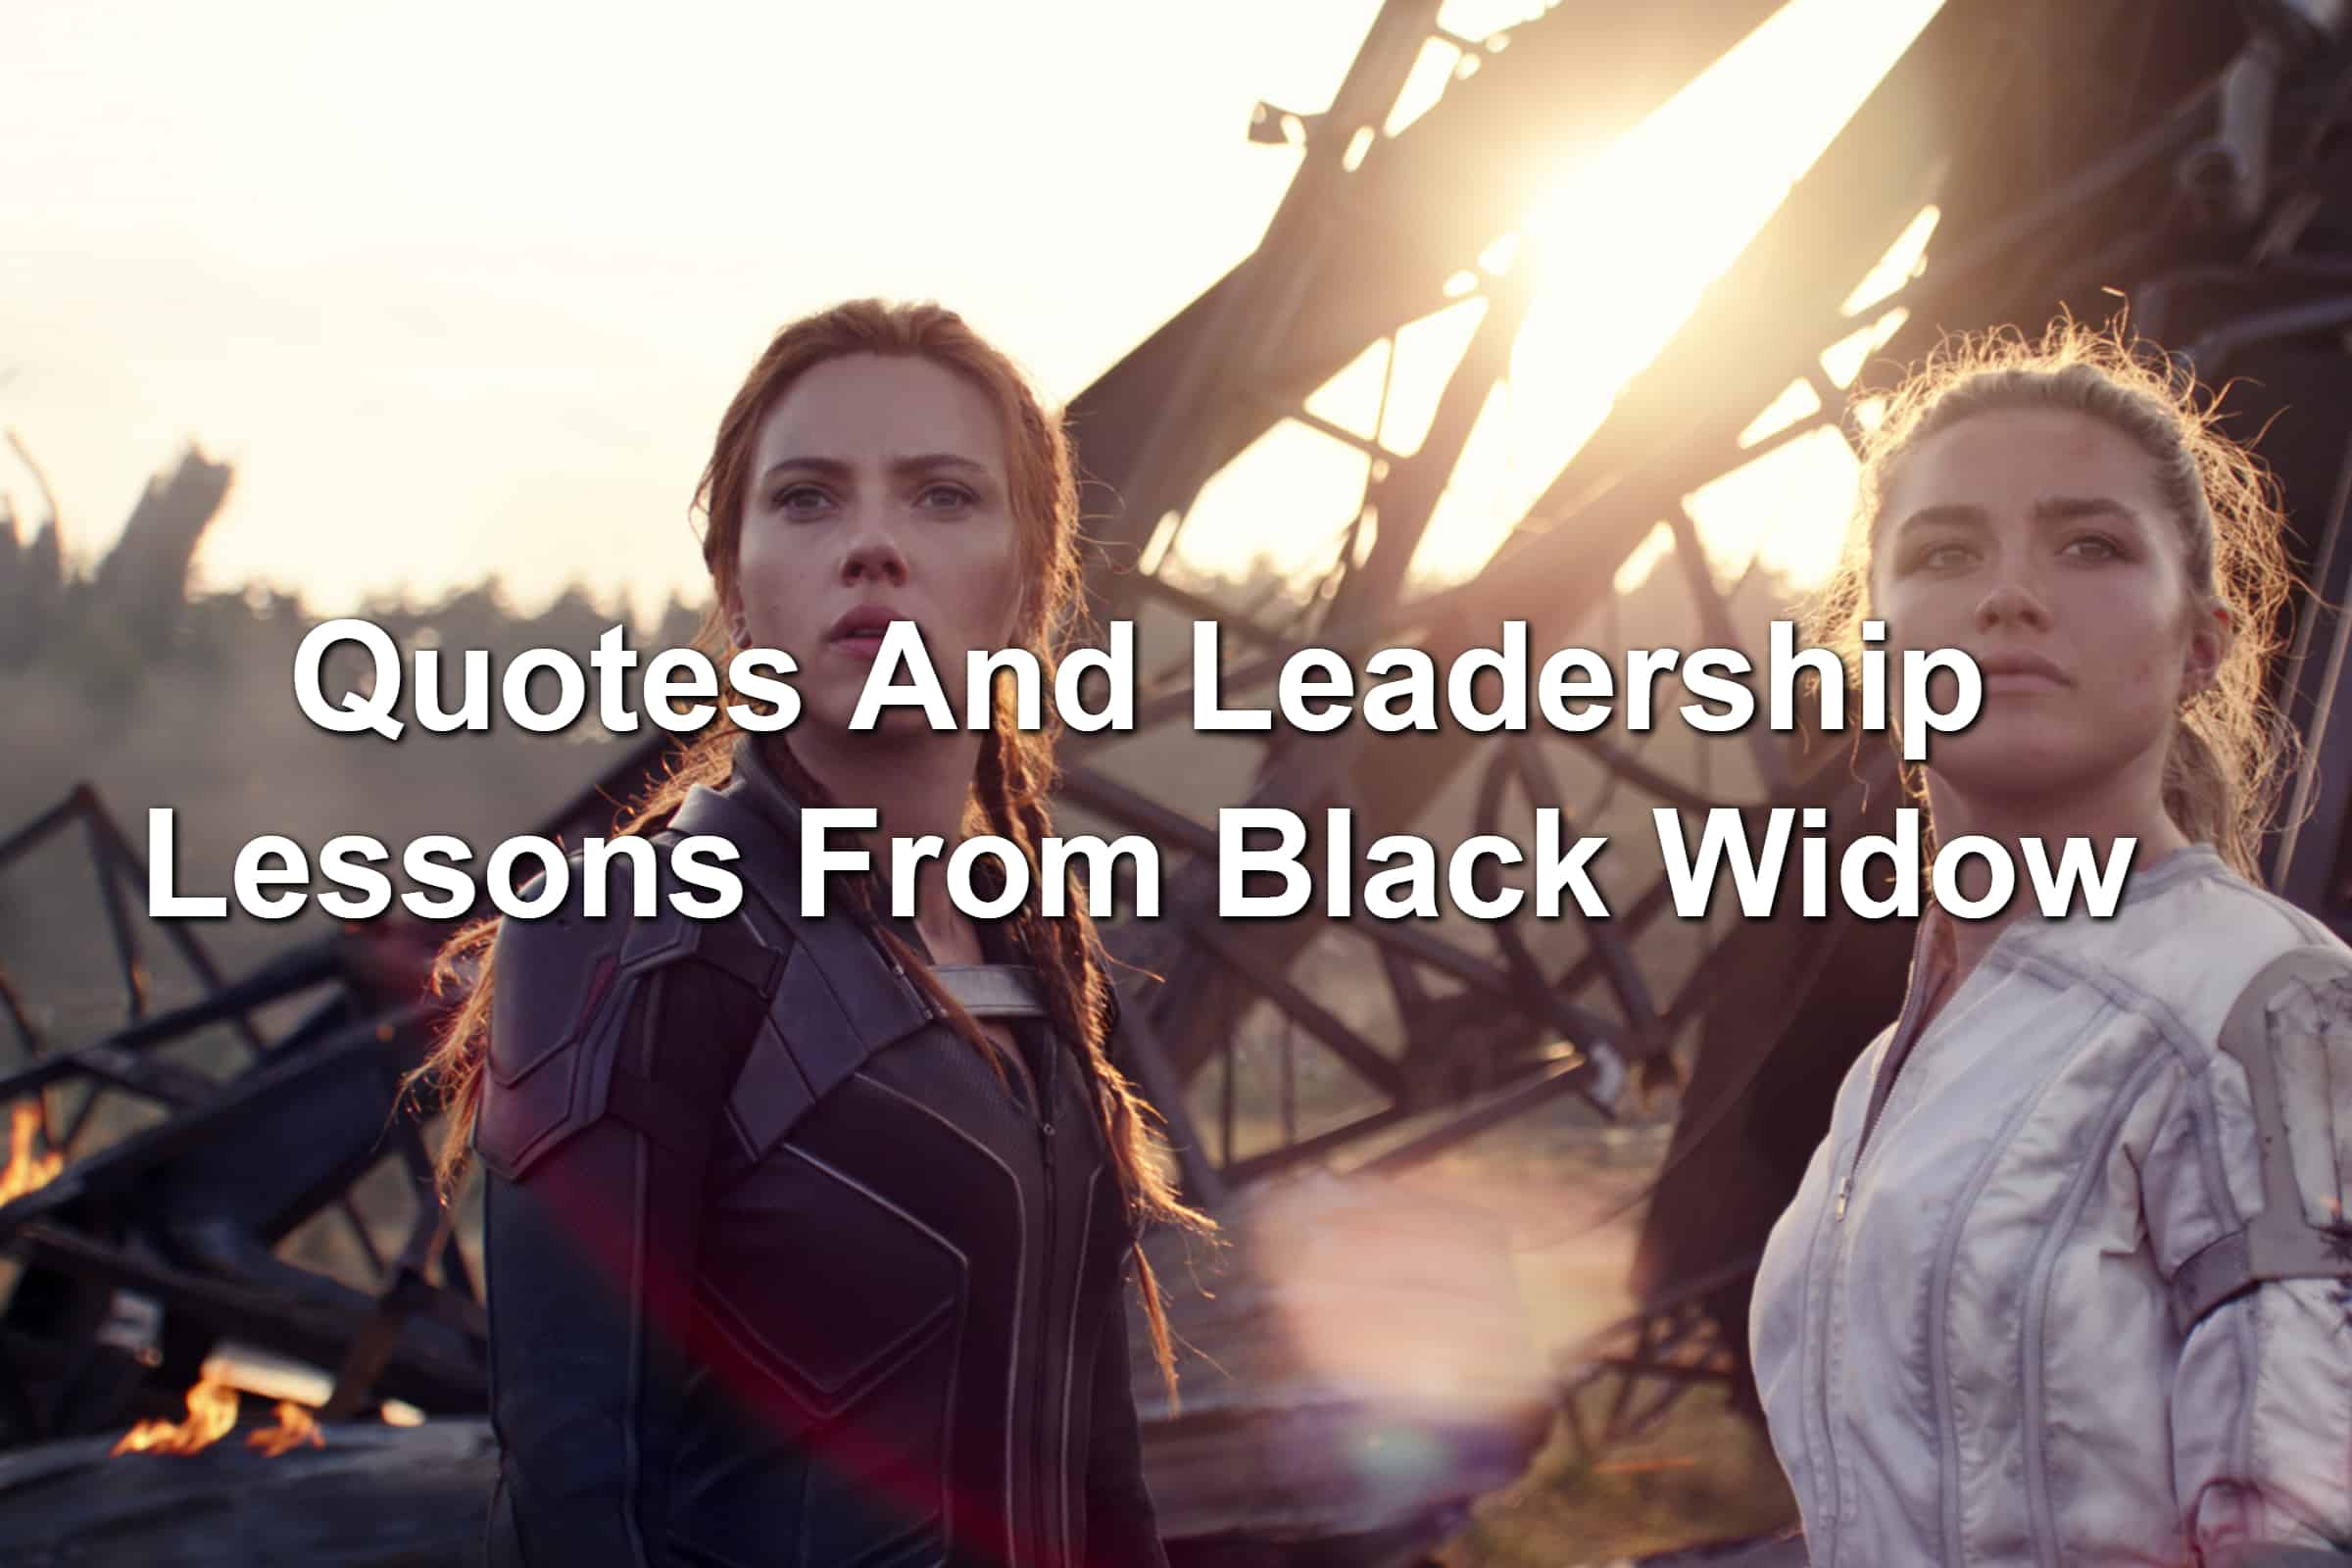 Image of Scarlett Johansson and Florence Pugh in Black Widow